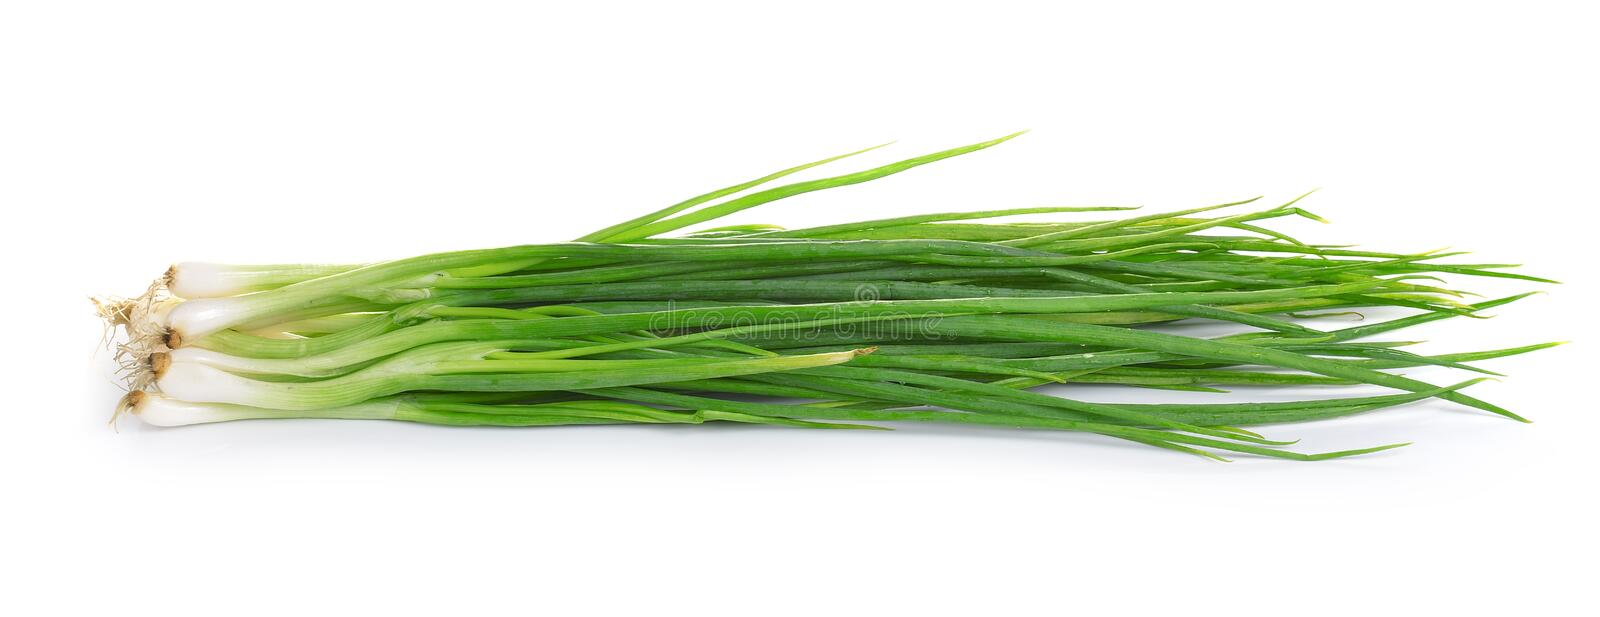 Green onion isolated on white background. Green onion isolated on the white background stock image